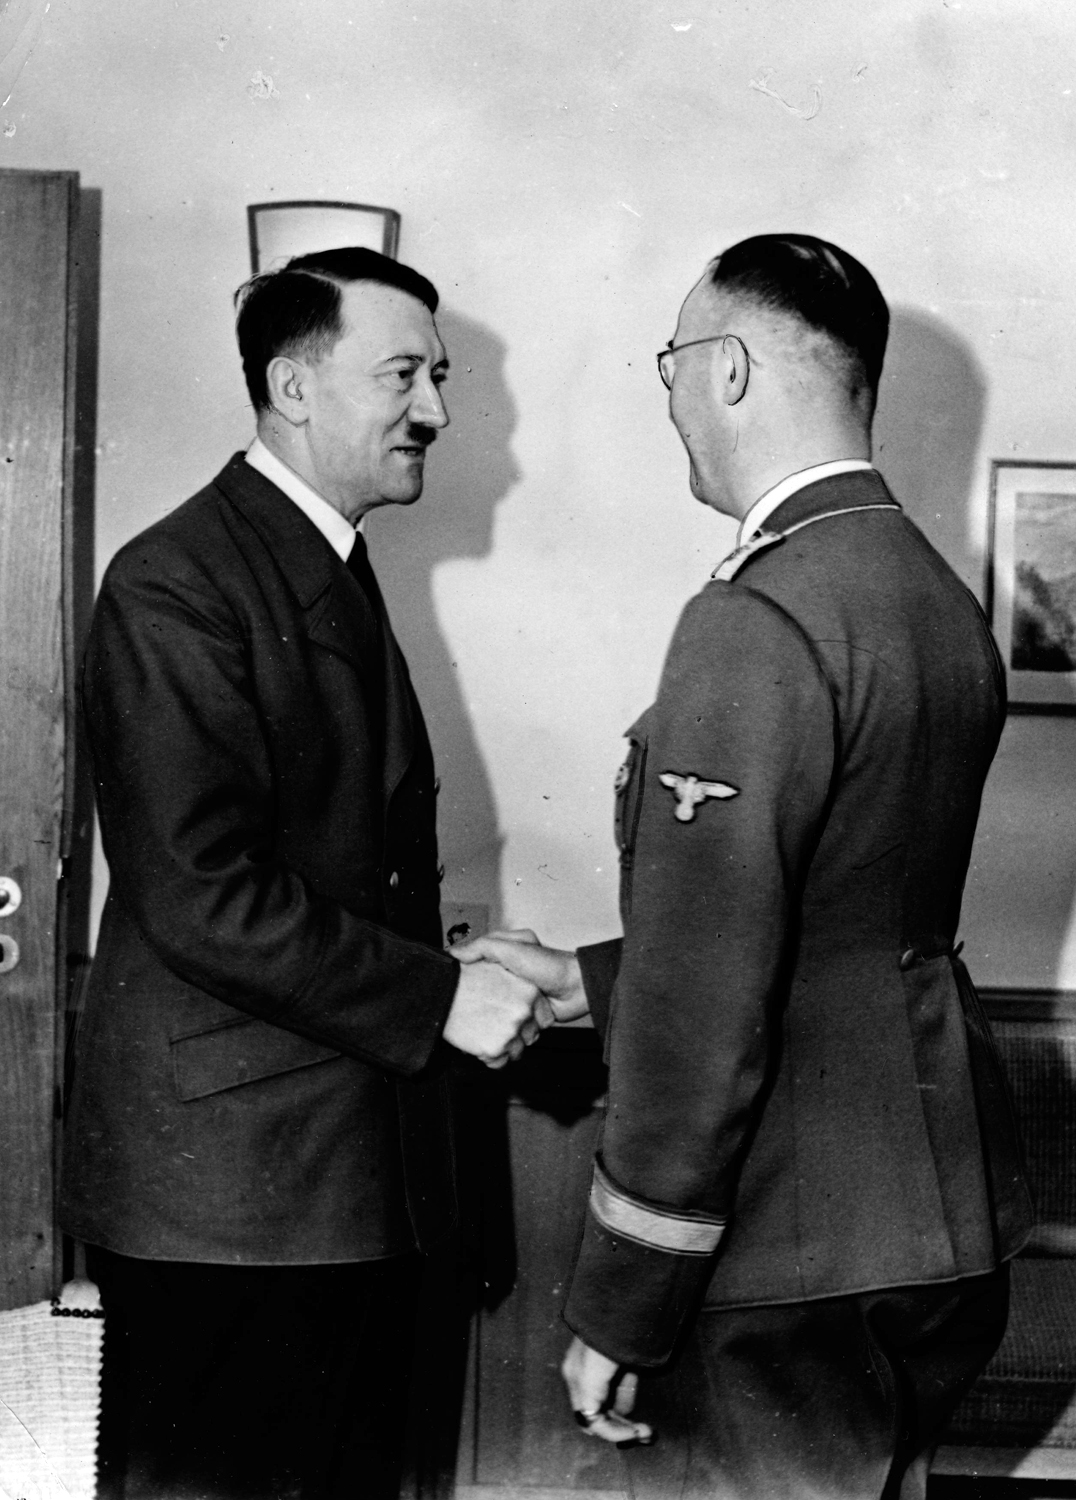 Adolf Hitler congratulates Heinrich Himmler for his 41th birthday